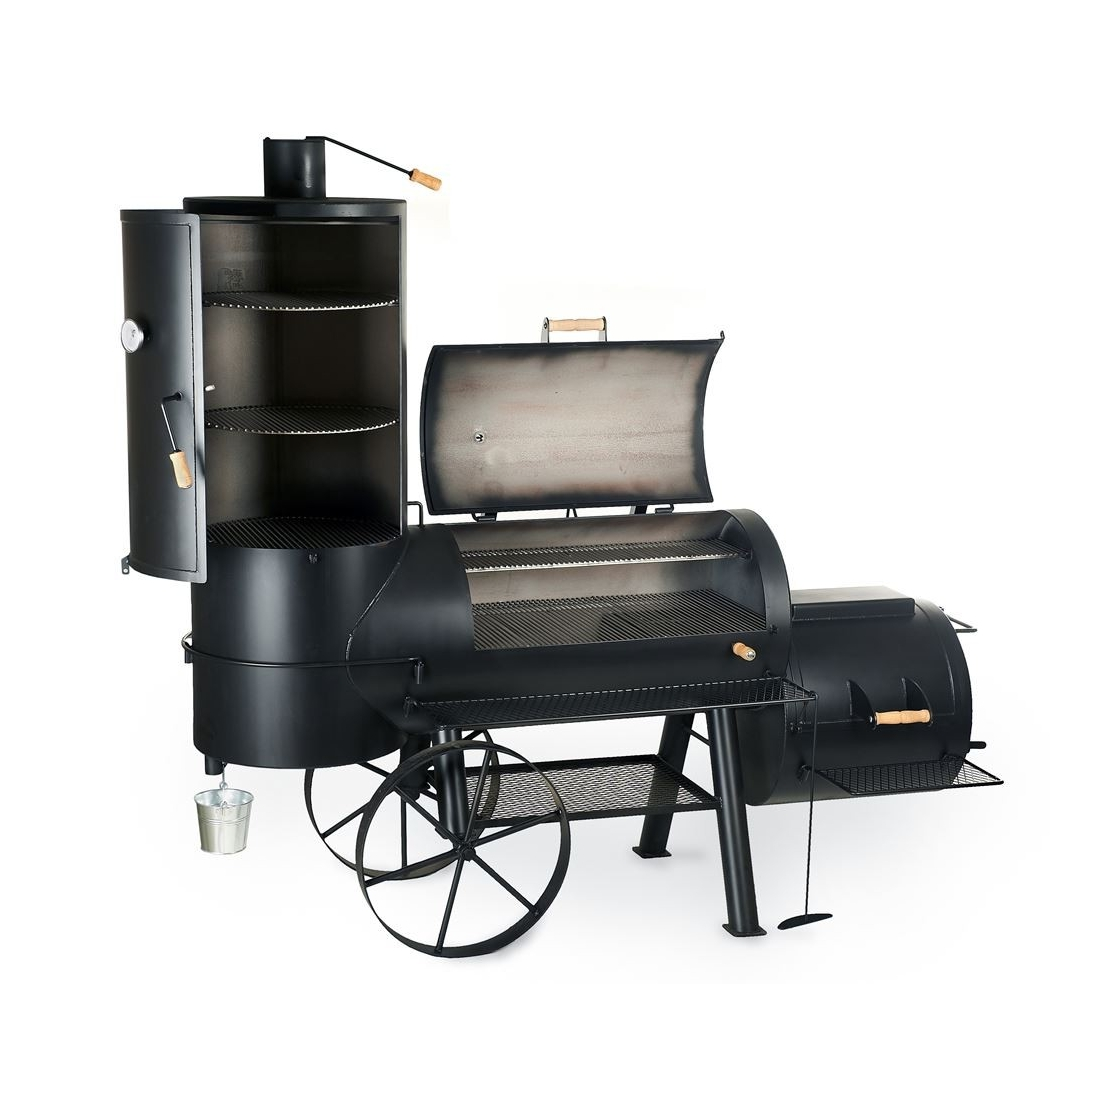 joe s bbq smoker chuckwagon 24 catering griller shop graz. Black Bedroom Furniture Sets. Home Design Ideas